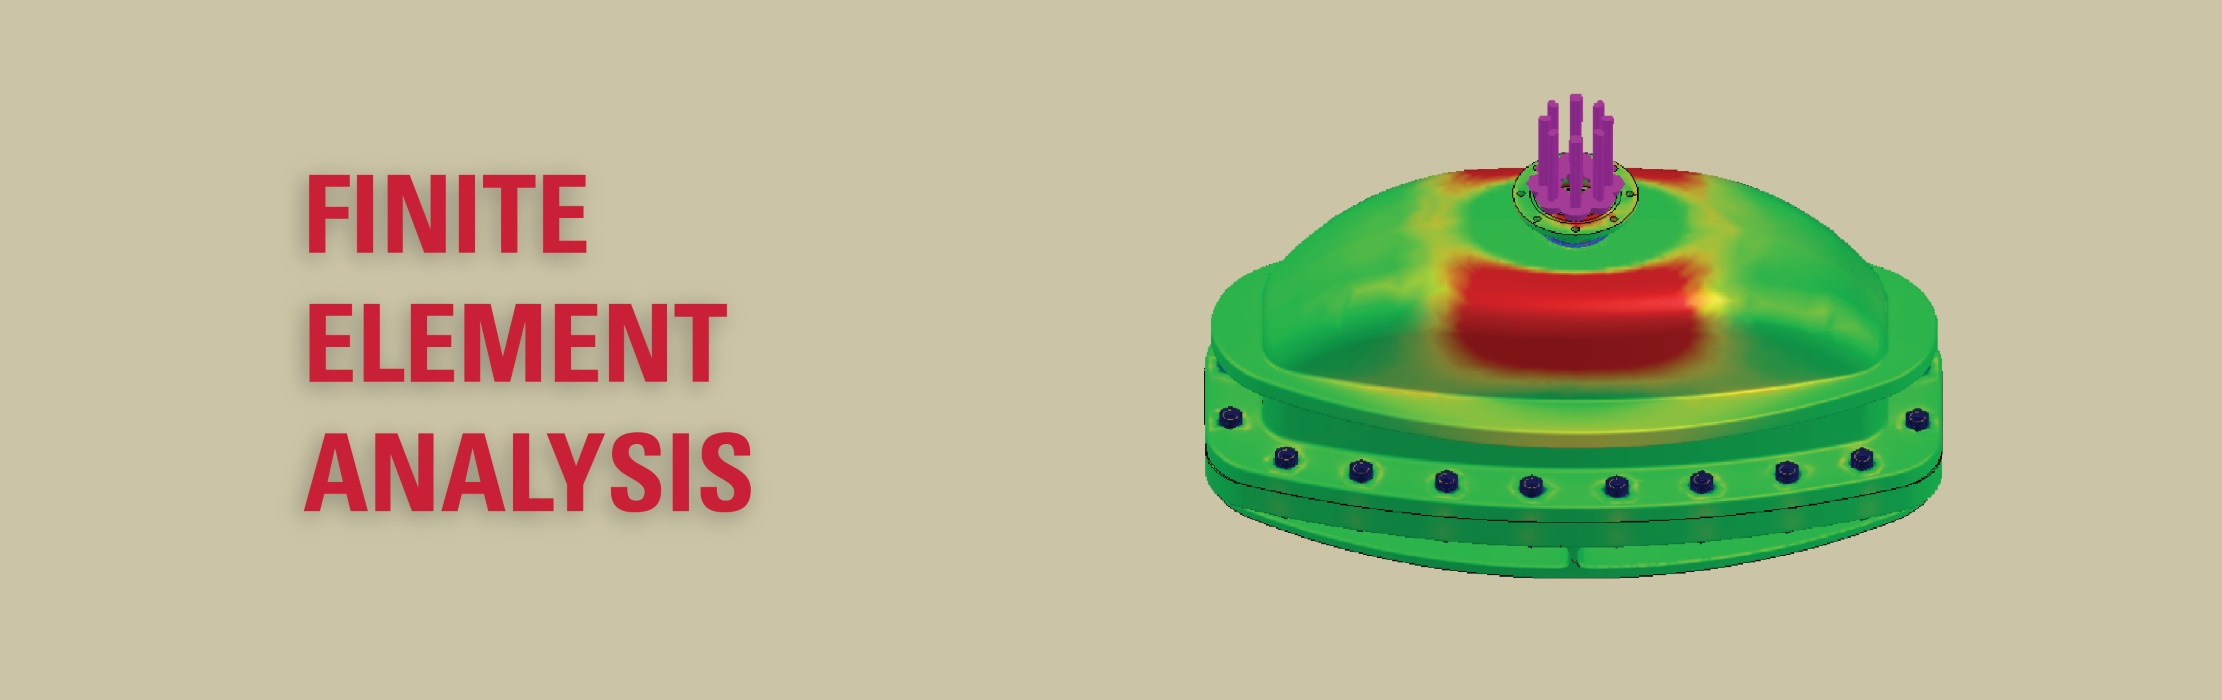 A 3D model of a mechanical component showing stress concentrations: Finite Element Analysis.